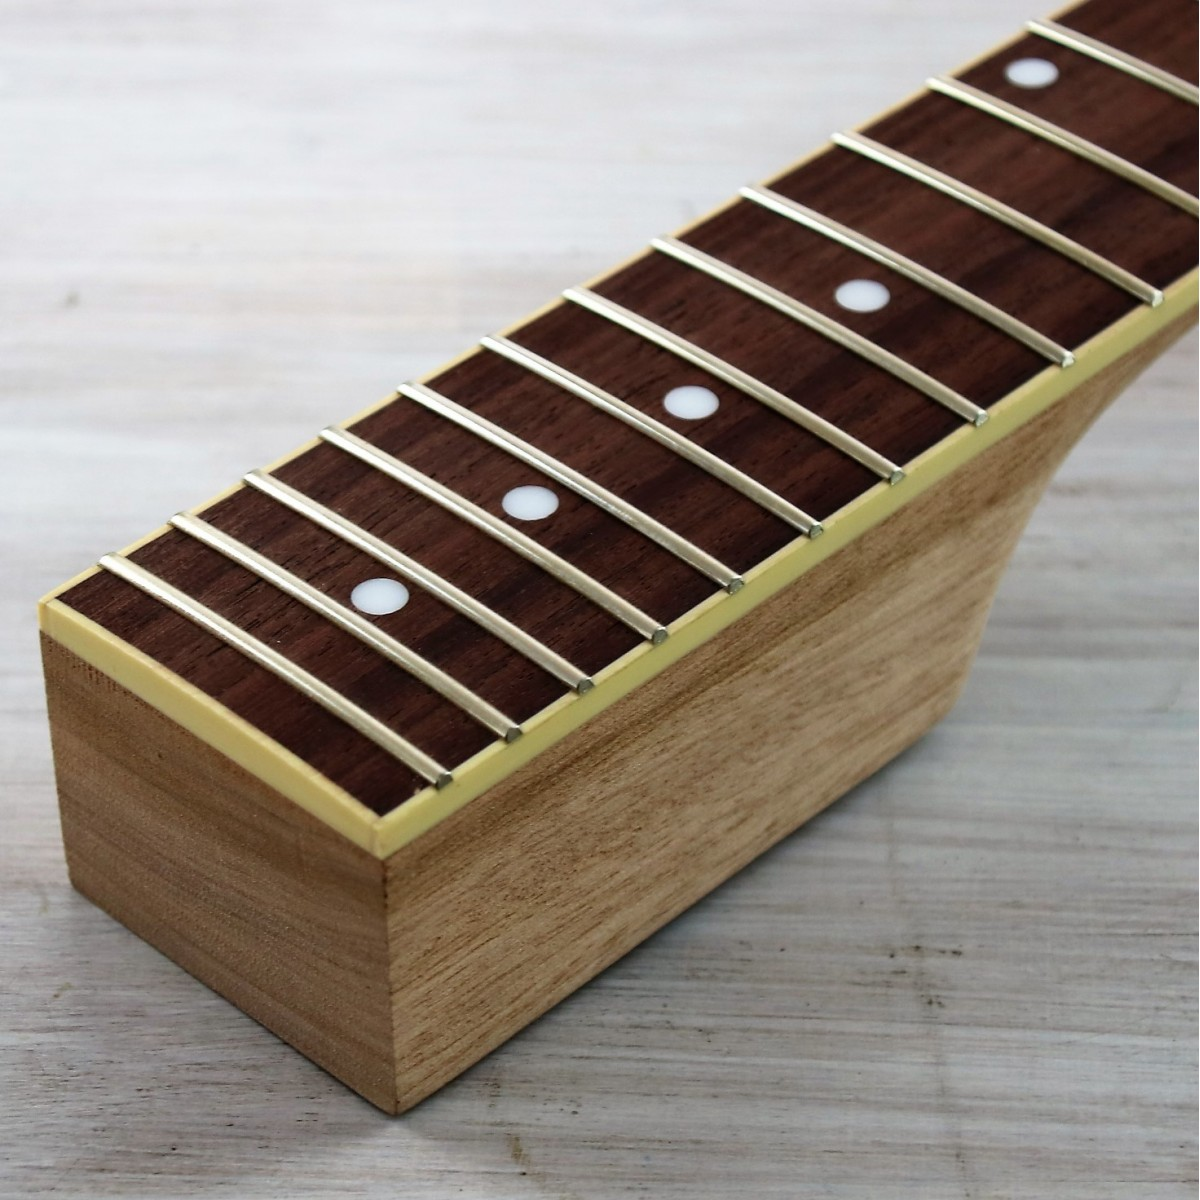 Di Marzio Dp100 Super Distortion